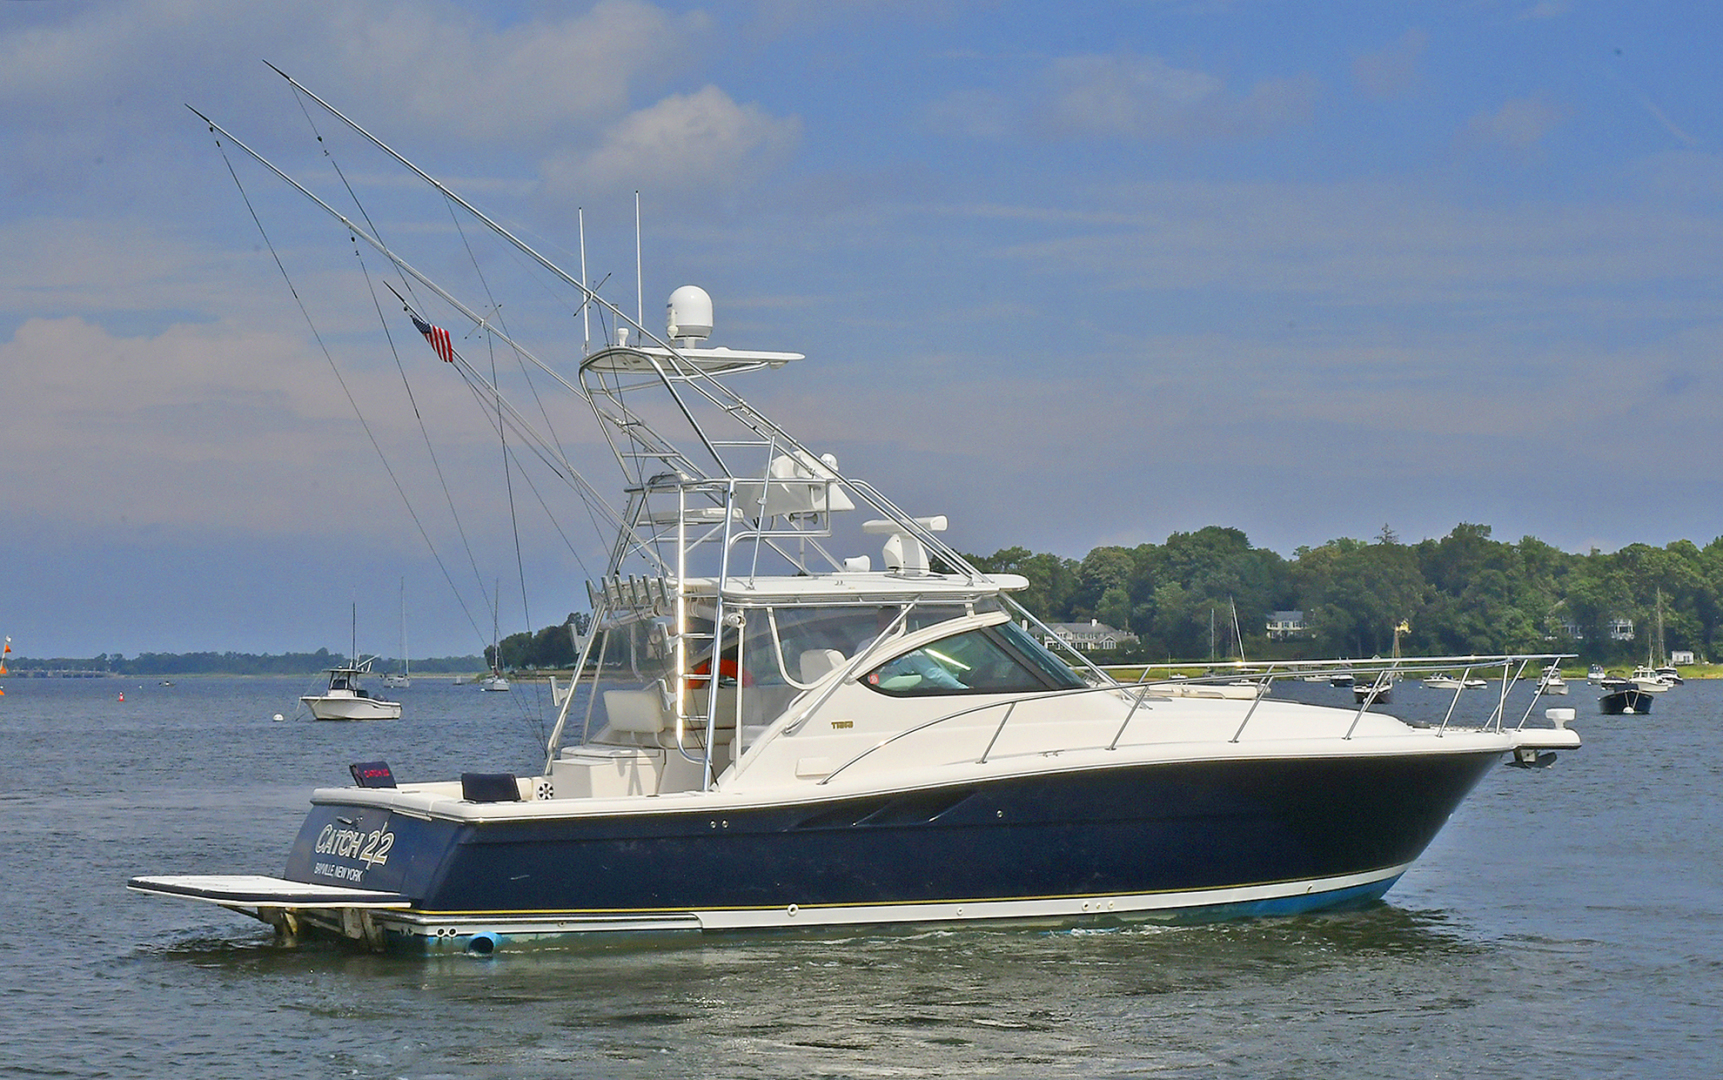 Tiara-3800 Open 2003-Catch 22 Oyster Bay-New York-United States-Starboard Stern-1224904 | Thumbnail